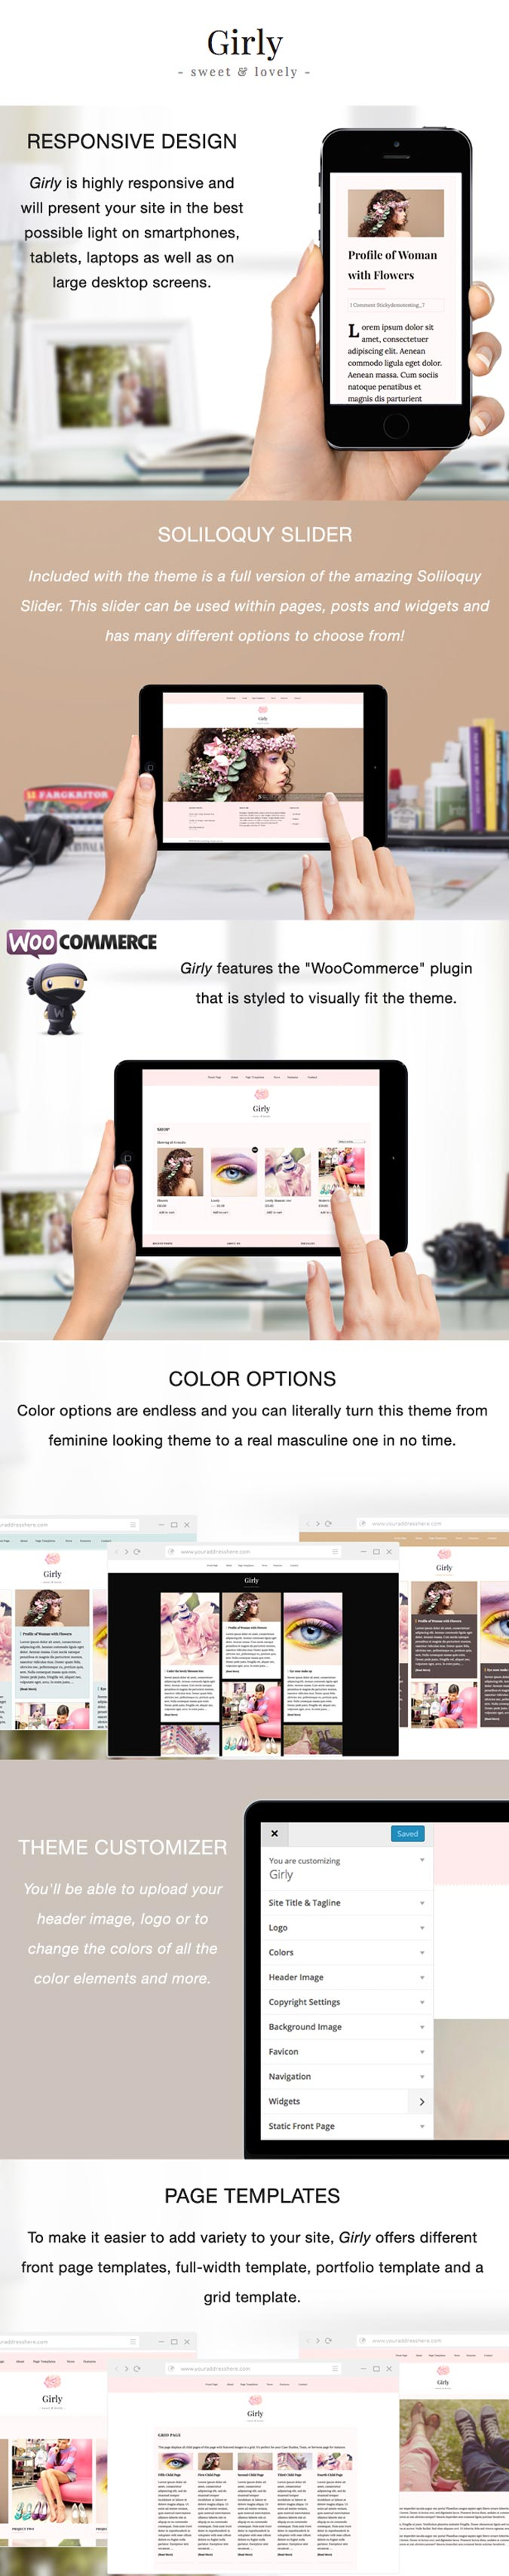 Magazine and Fashion WordPress Theme